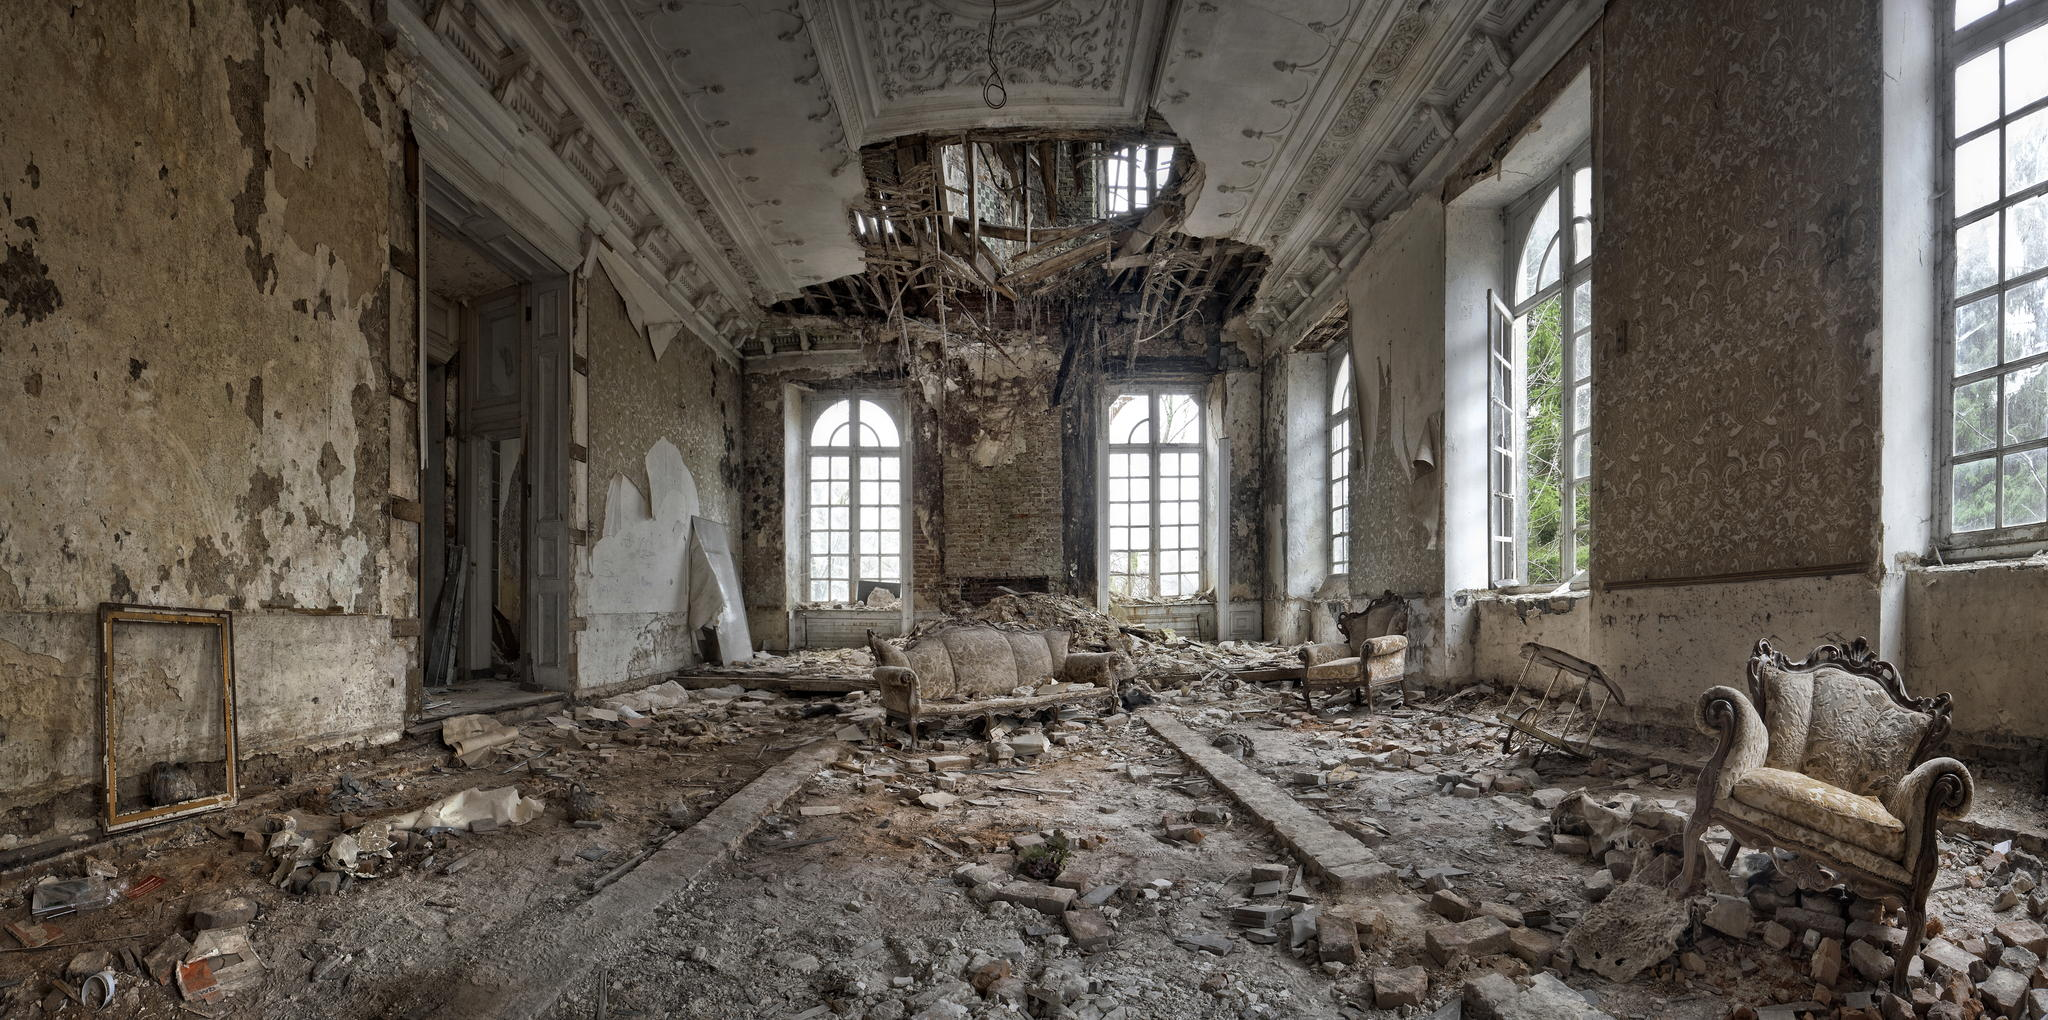 29 Spooky Abandoned Spaces That Will Give You Goosebumps